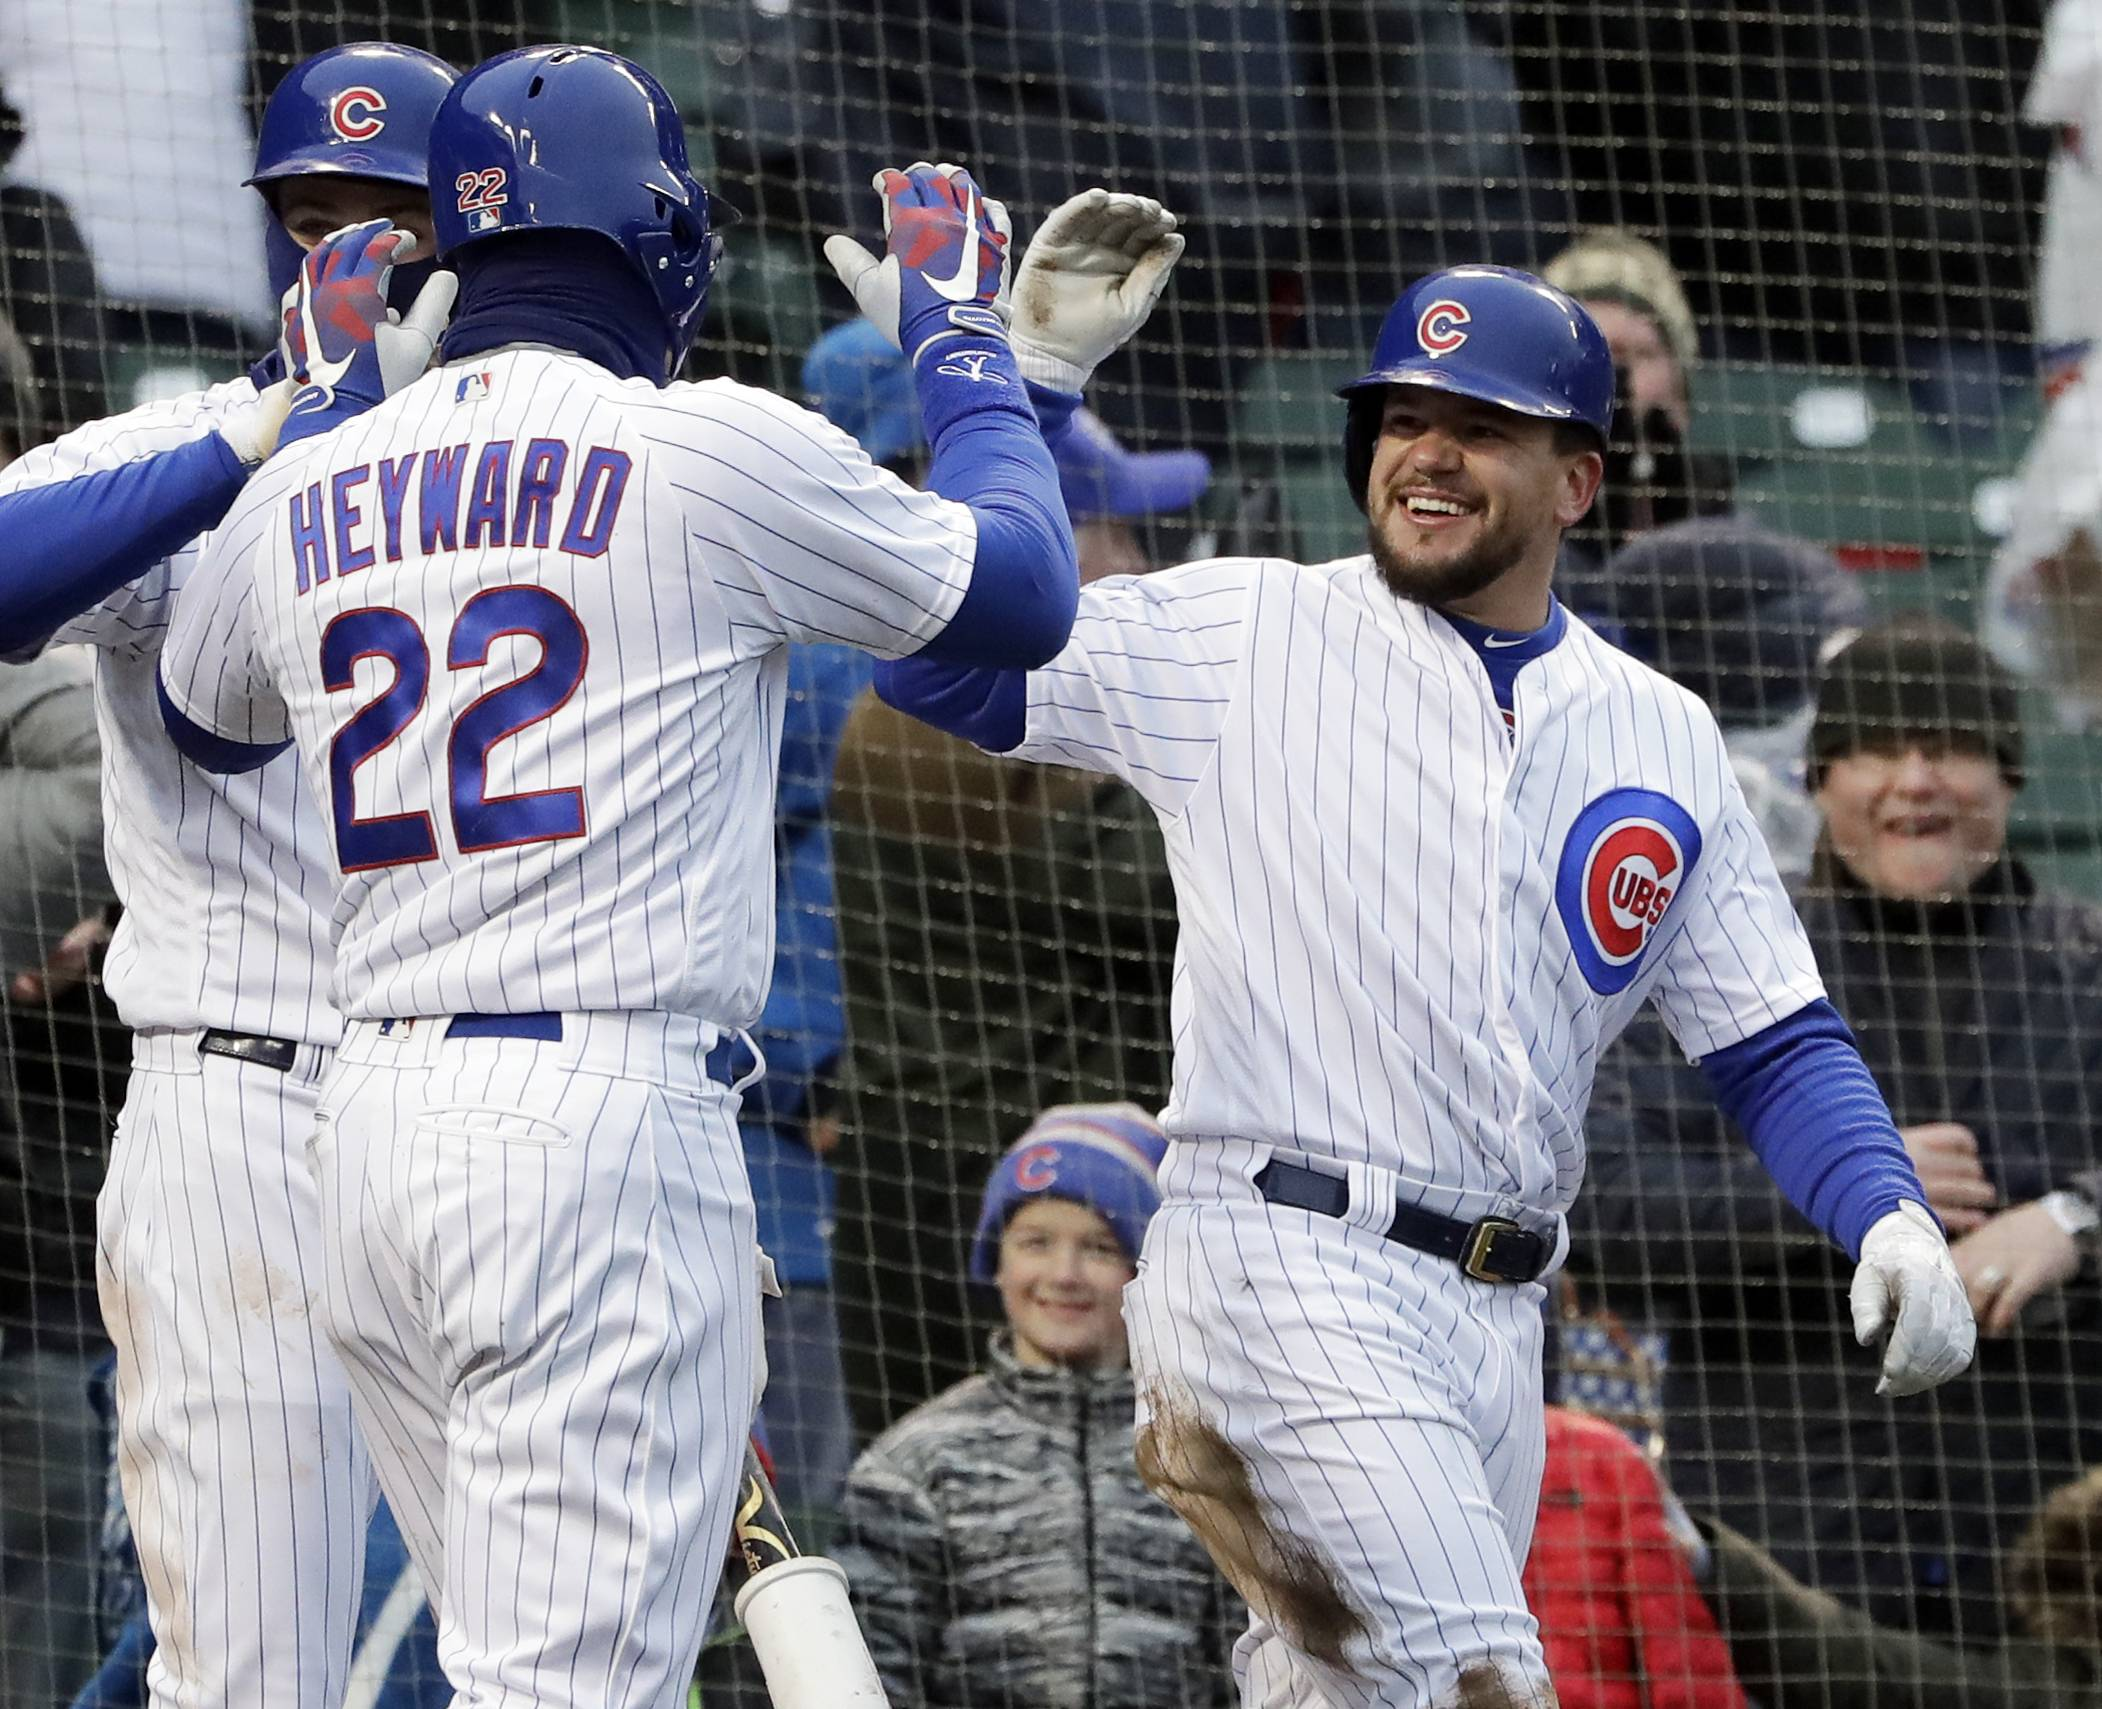 Chicago Cubs' Kyle Schwarber, right, celebrates with Jason Heyward (22) after they scored on a wild pitch by Atlanta Braves relief pitcher Peter Moylan during the eighth inning Saturday at Wrigley Field.